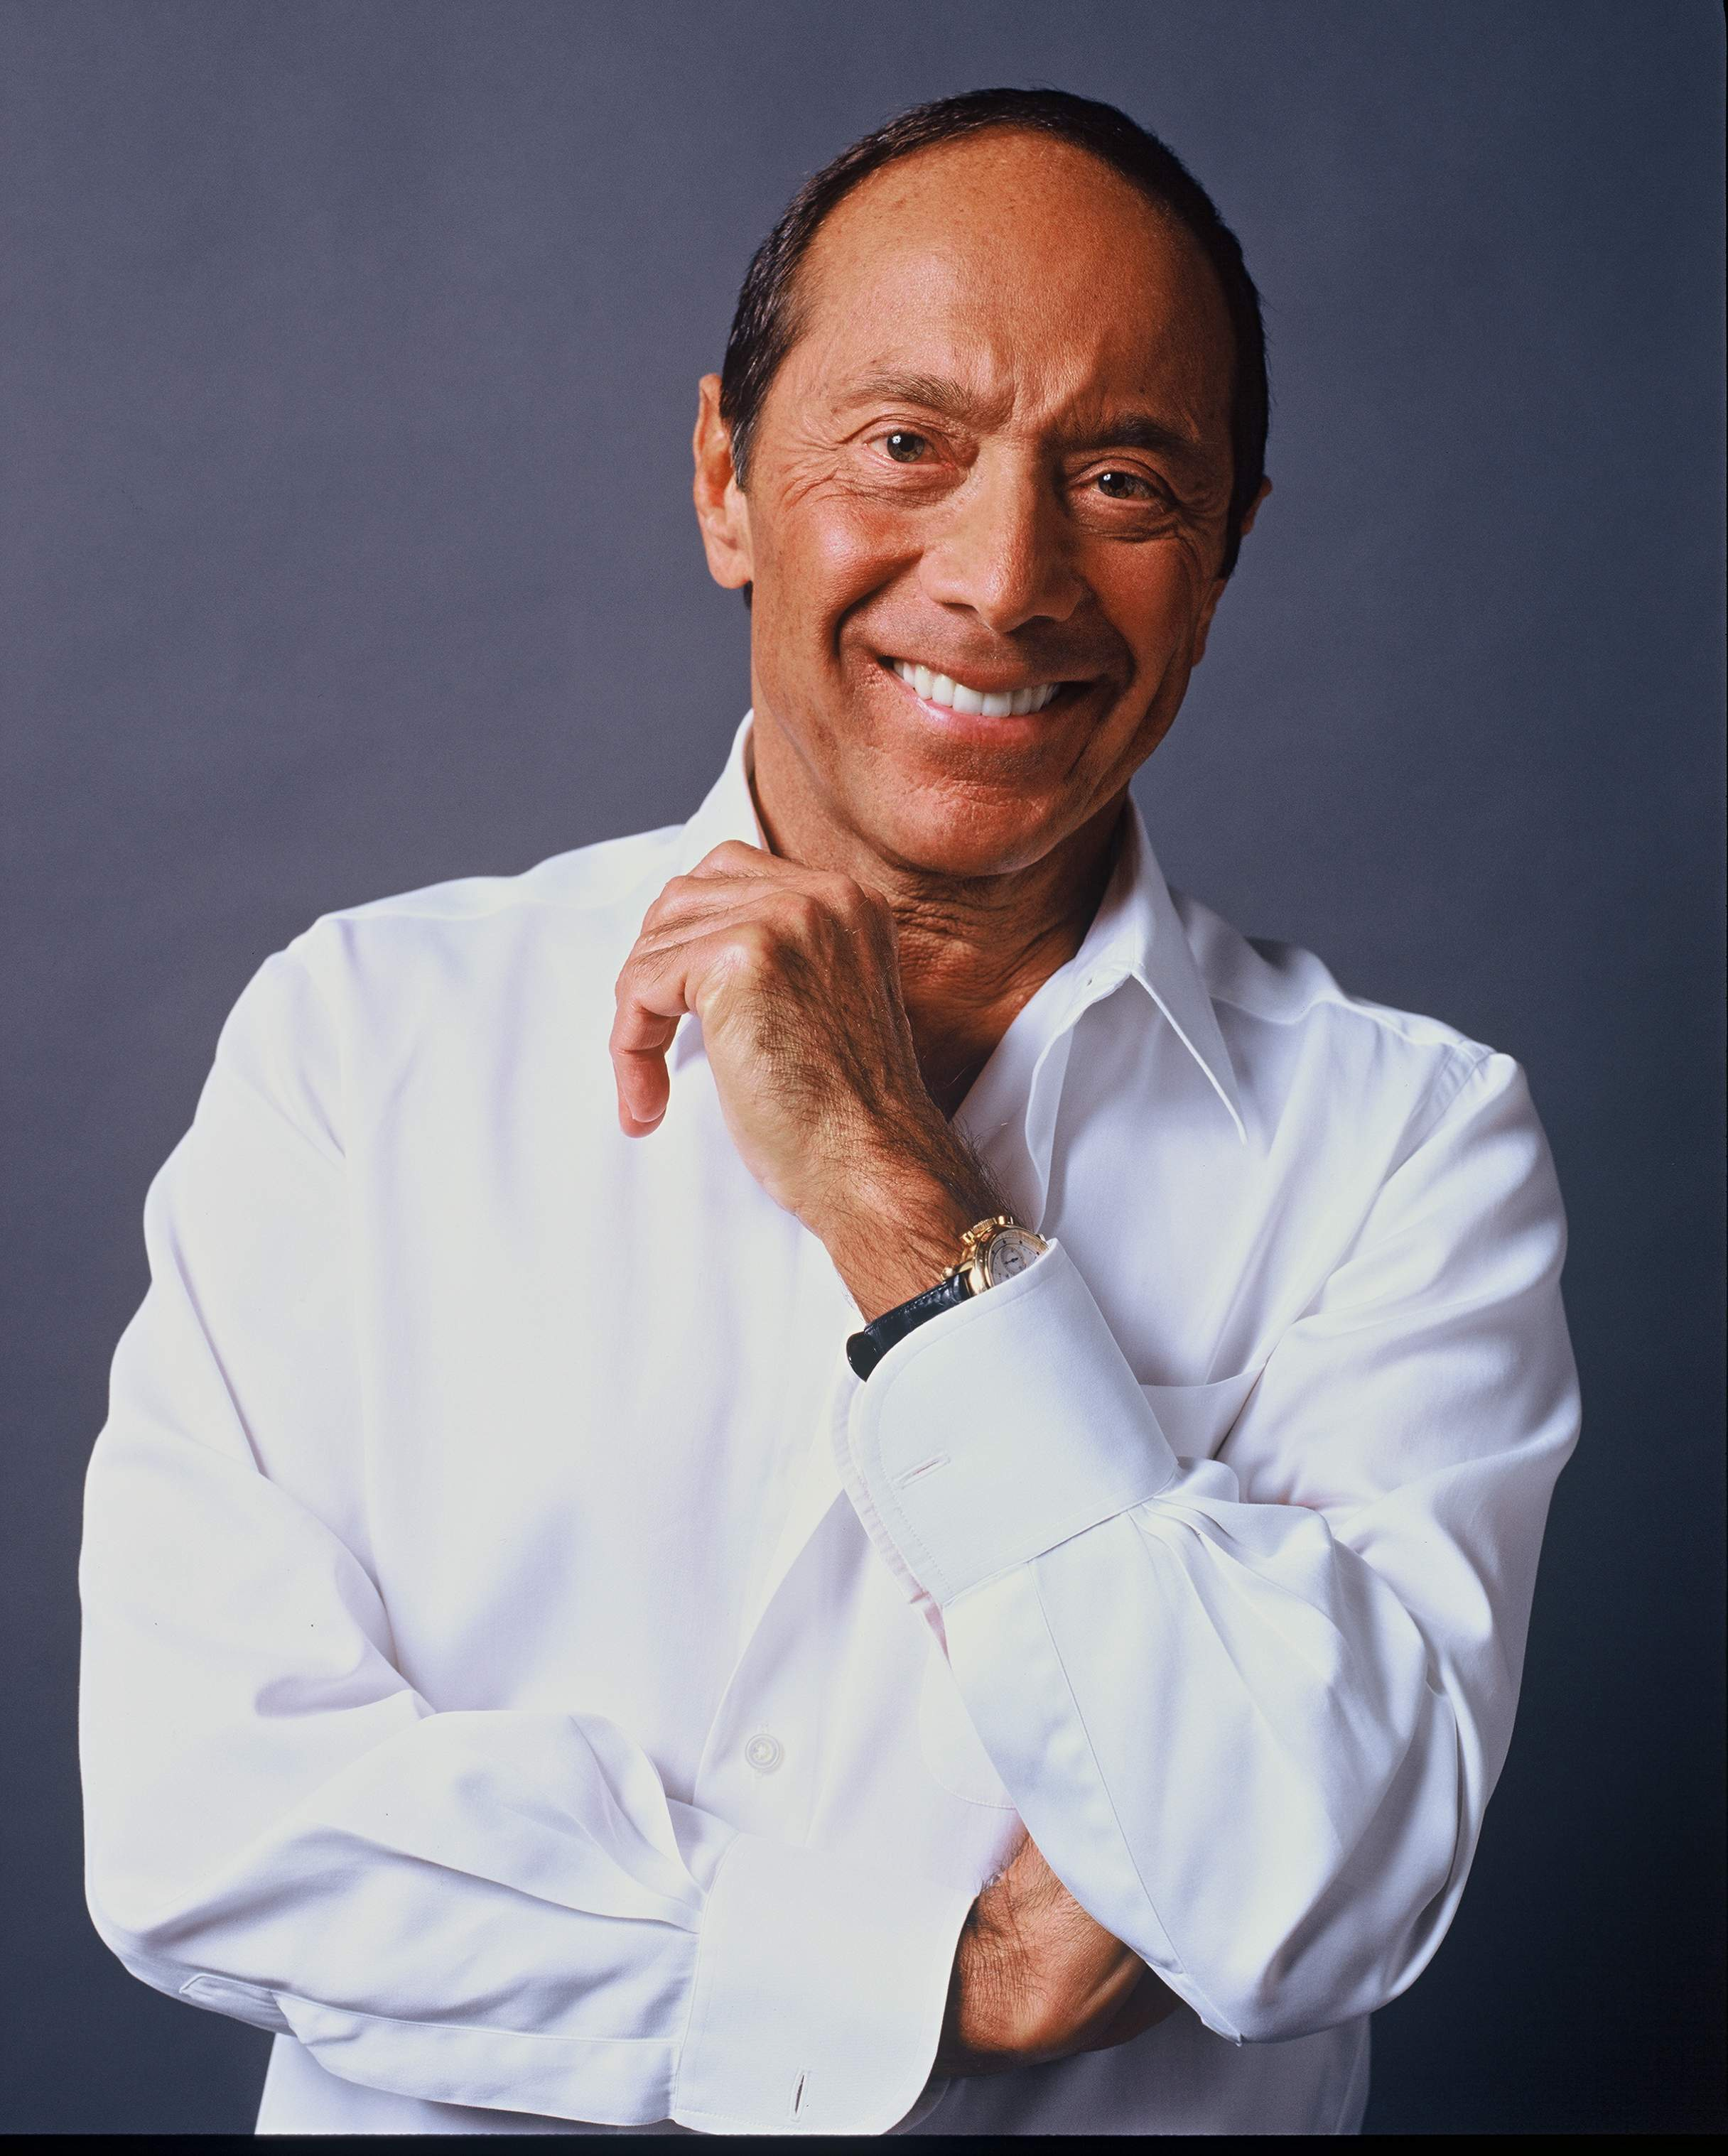 The 75-year old son of father Andy Ankain and mother Camelia Ankain, 168 cm tall Paul Anka in 2017 photo